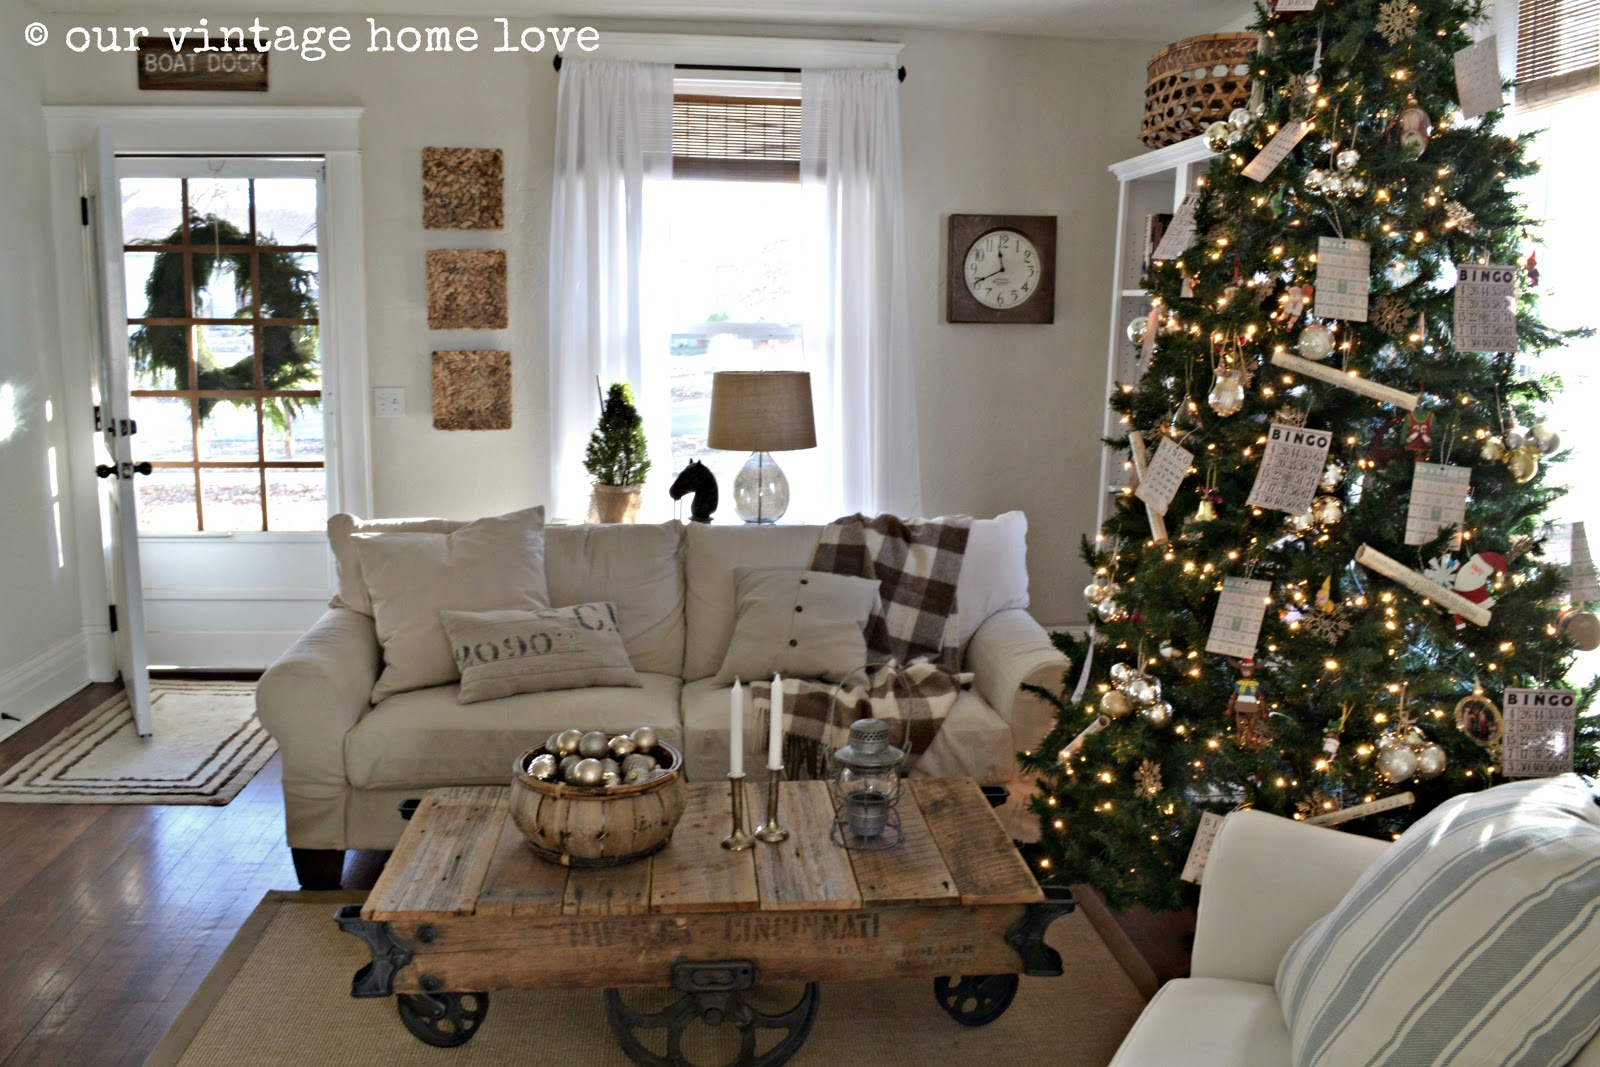 vintage home love  2012 Christmas Decor Ideas 2012 Christmas Decor Ideas